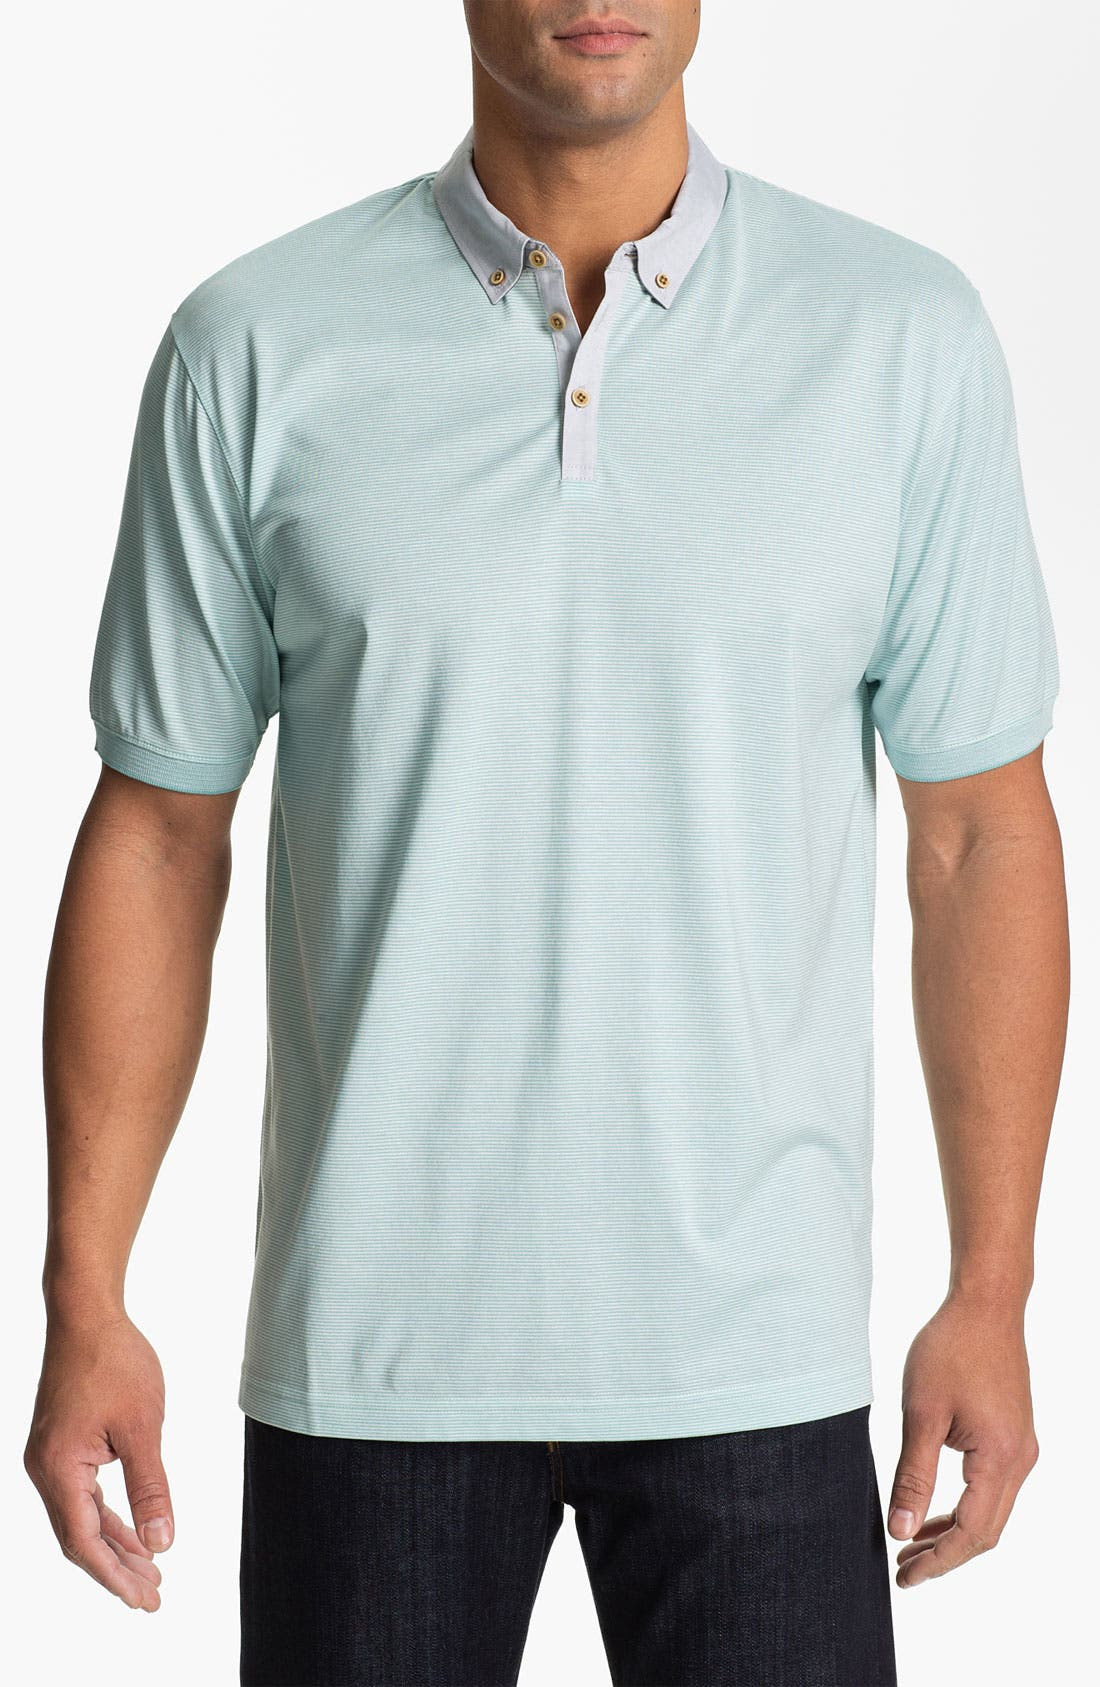 Alternate Image 1 Selected - Cutter & Buck 'Midvale' Pima Cotton Polo (Big & Tall)